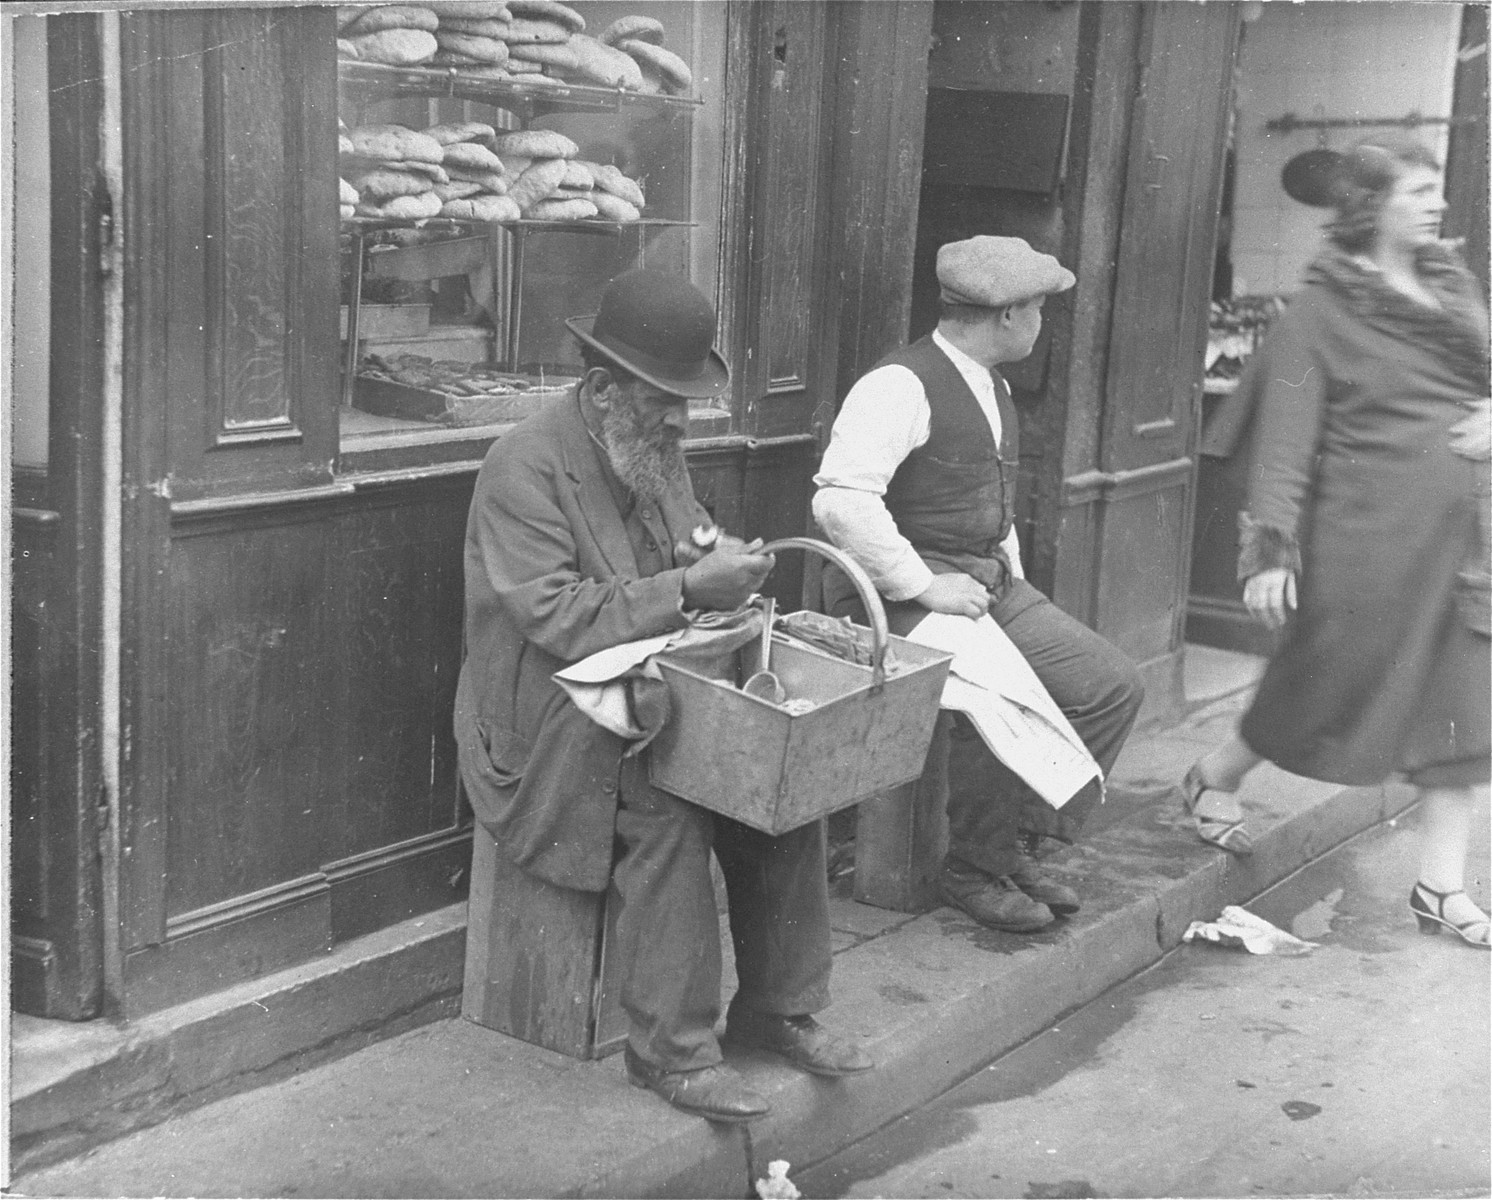 A Jew sells peanuts in front of a bakery in the Jewish quarter of Paris.